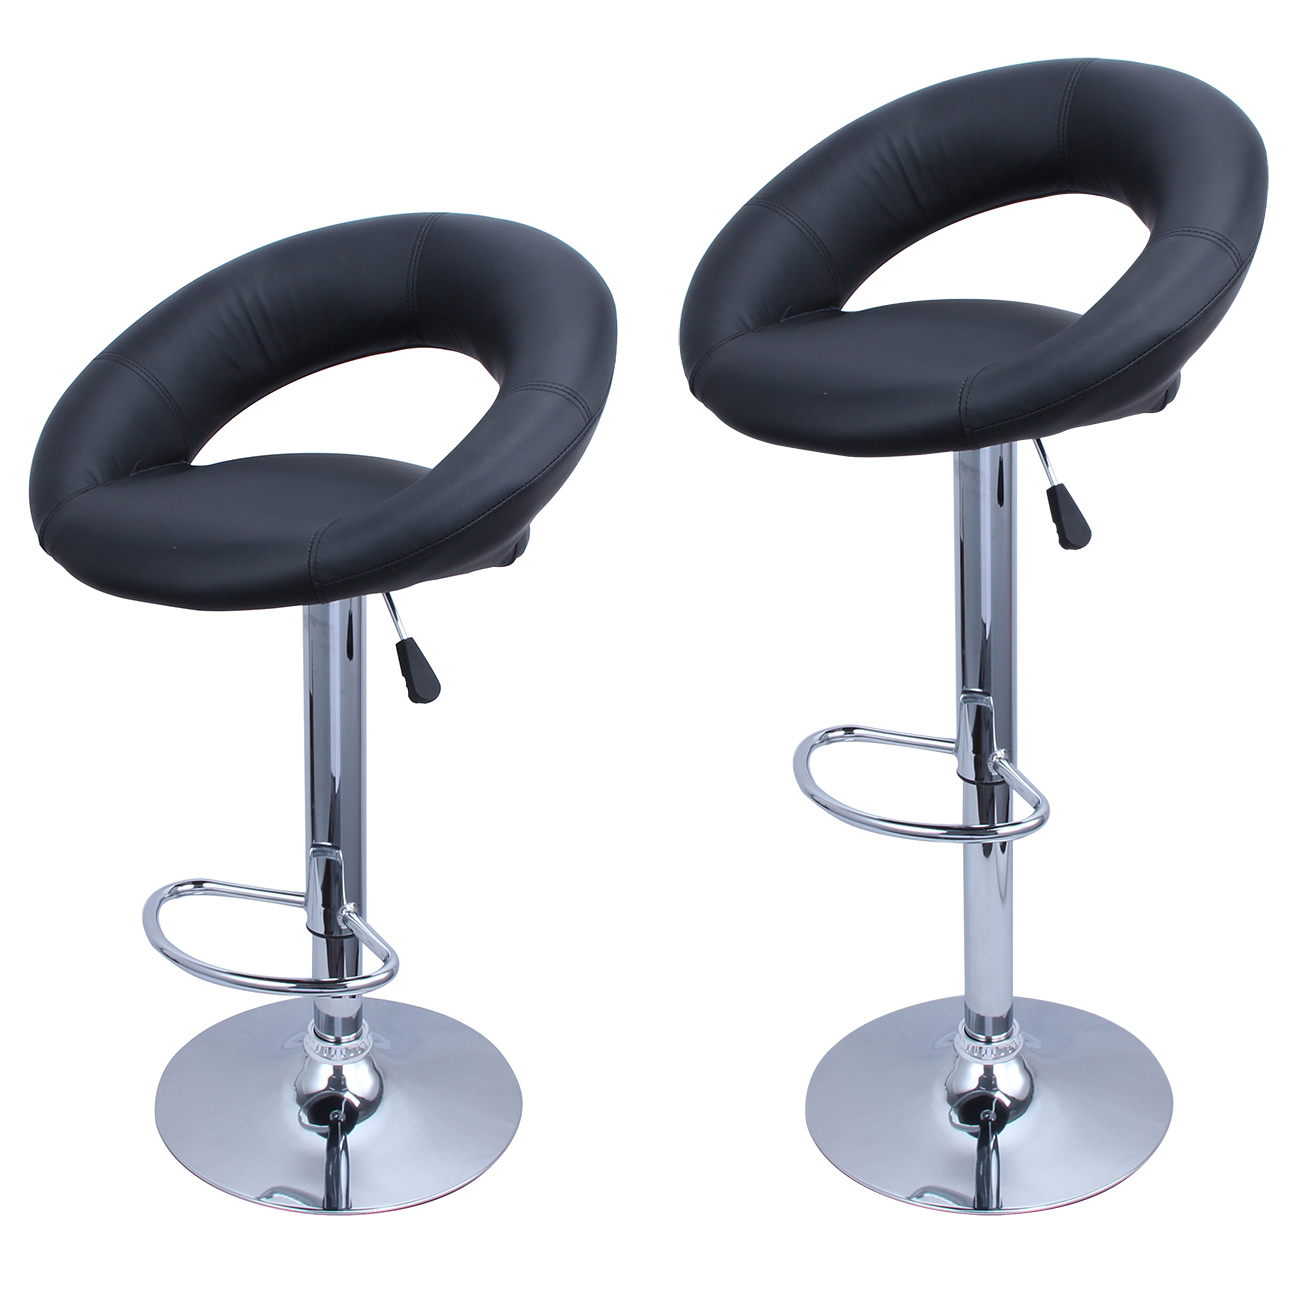 Belleze Bar Stool Pub Modern Adjustable Swivel Hydraulic, Set of 2 Black